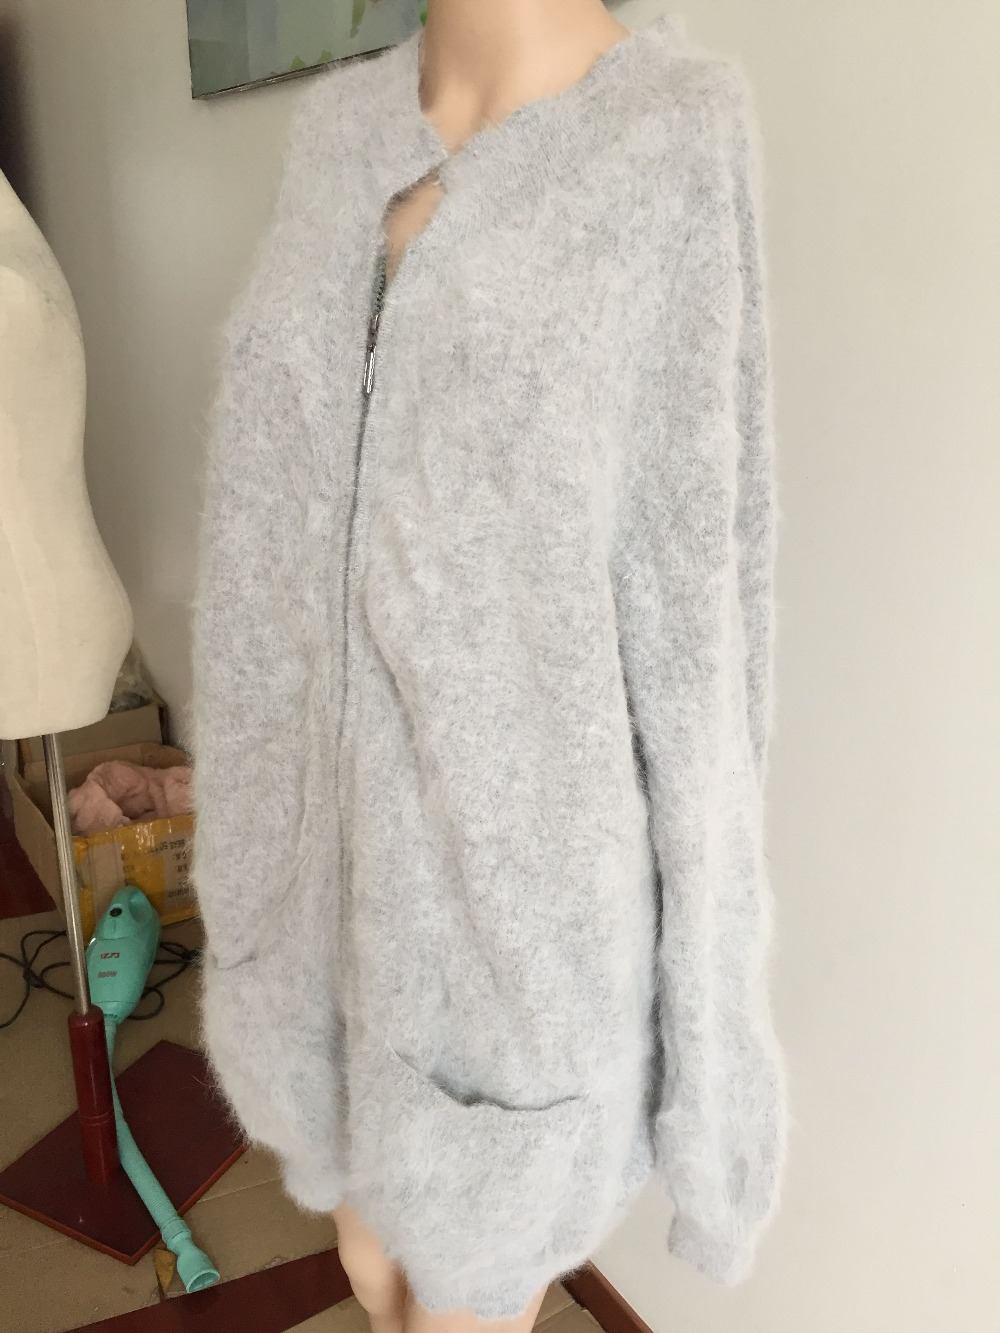 24ba62a88b Very Very Low Price Inventory clearance sale 100% Mink Cashmere Women  Sweaters Cardigans with zipper free shipping-in Cardigans from Women s  Clothing on ...